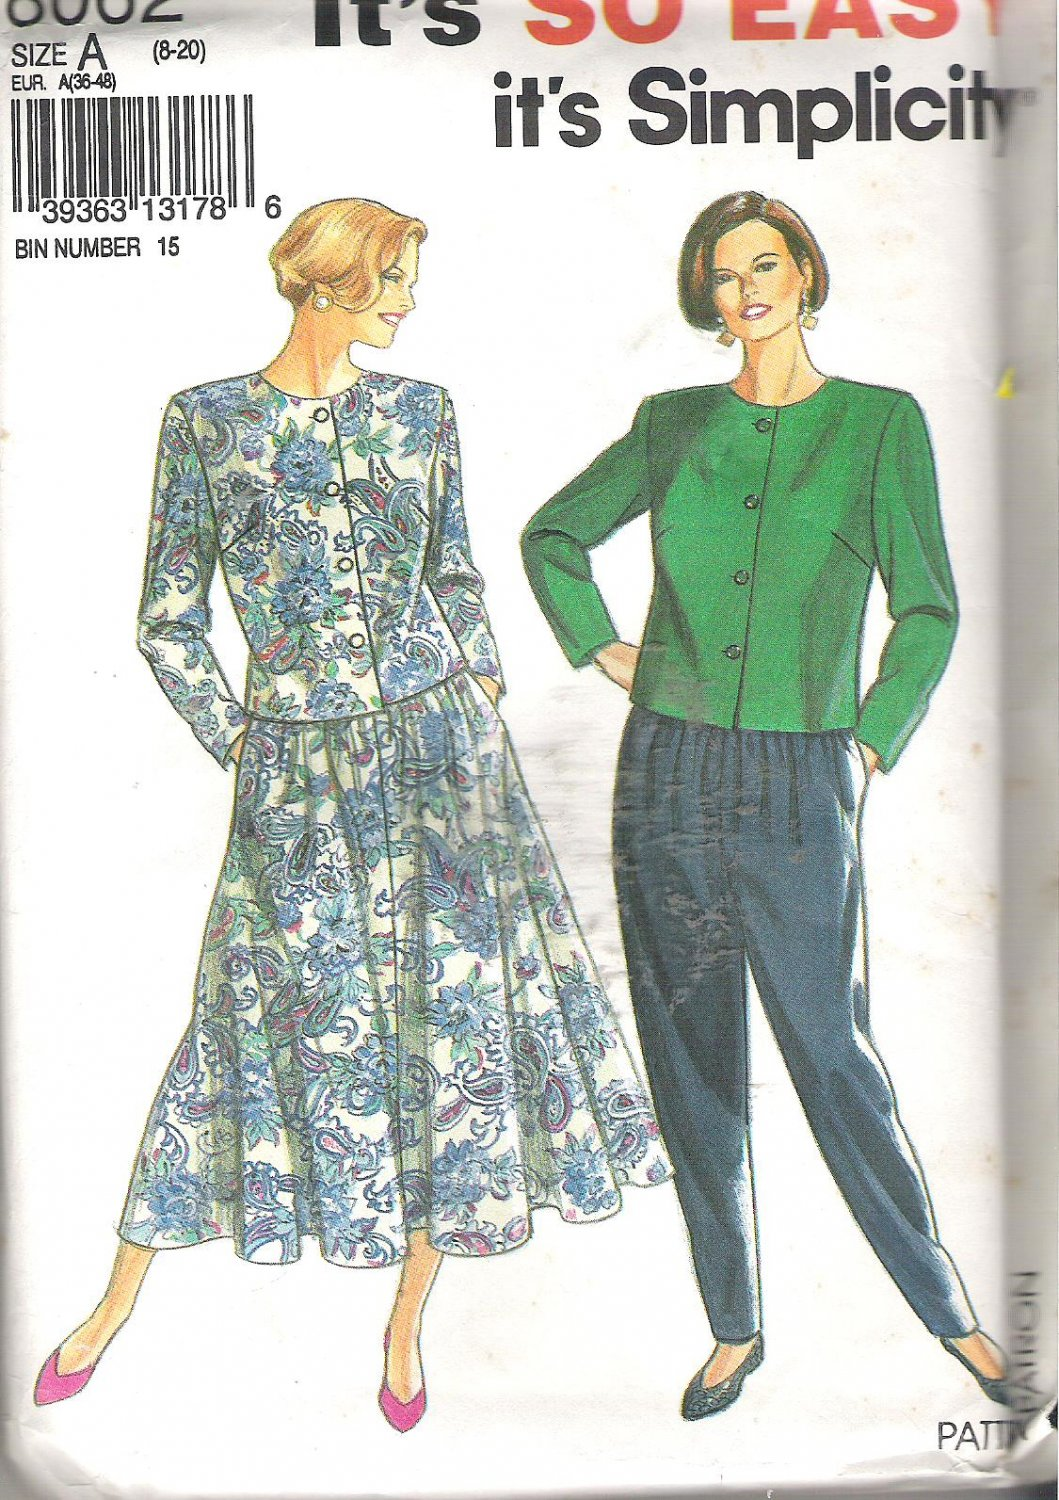 Simplicity 8062 (1992) Pattern Pleated Pants Gored Skirt Front Button Top Plus Size 8-20 Uncut